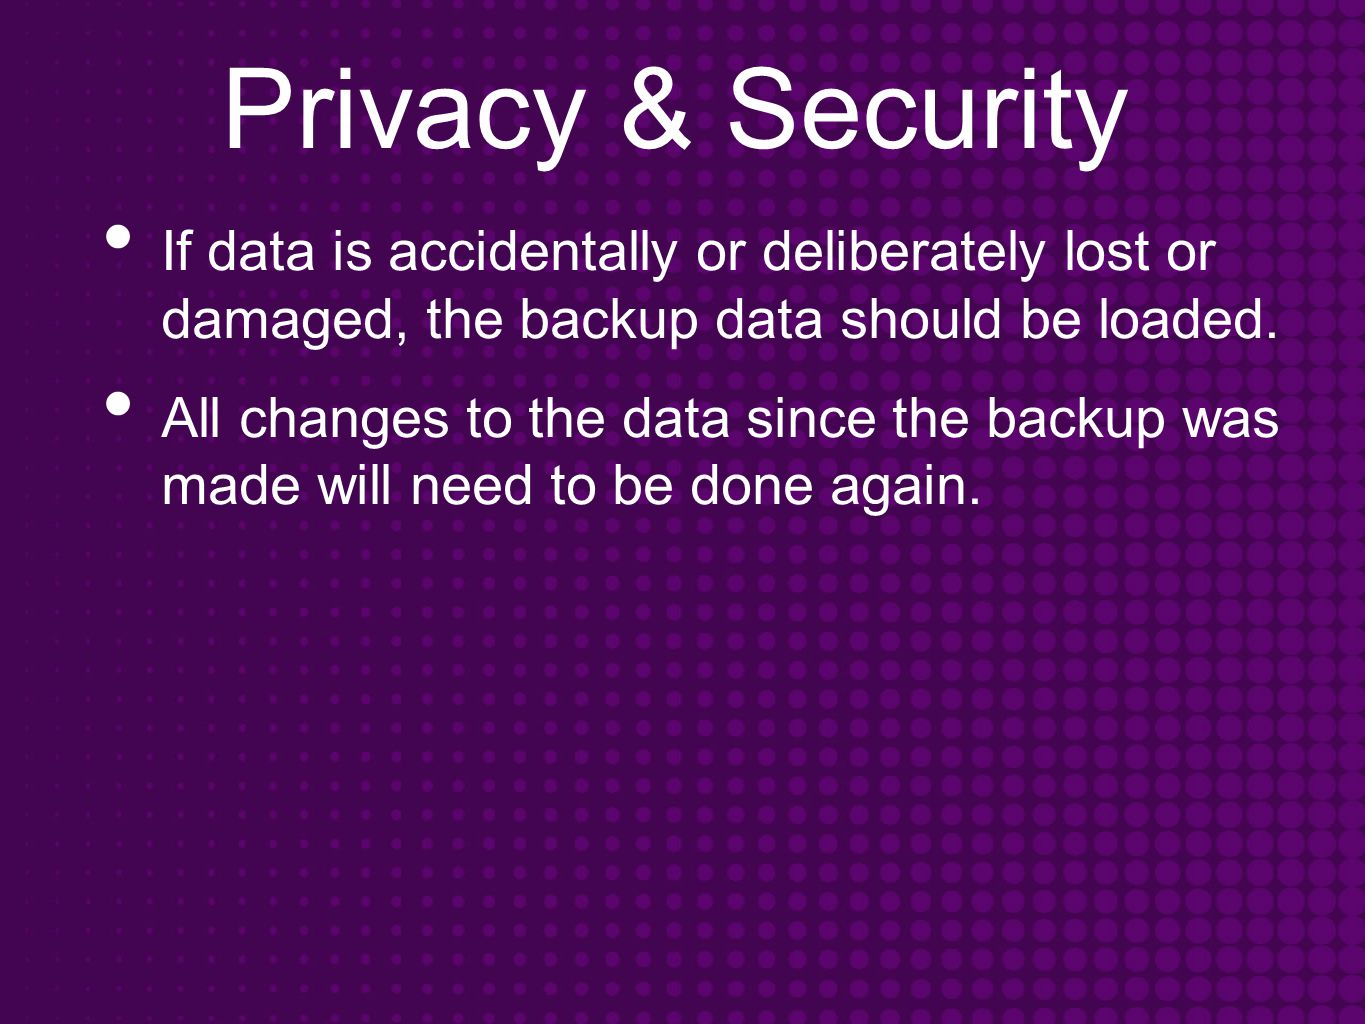 Privacy & Security If data is accidentally or deliberately lost or damaged, the backup data should be loaded.